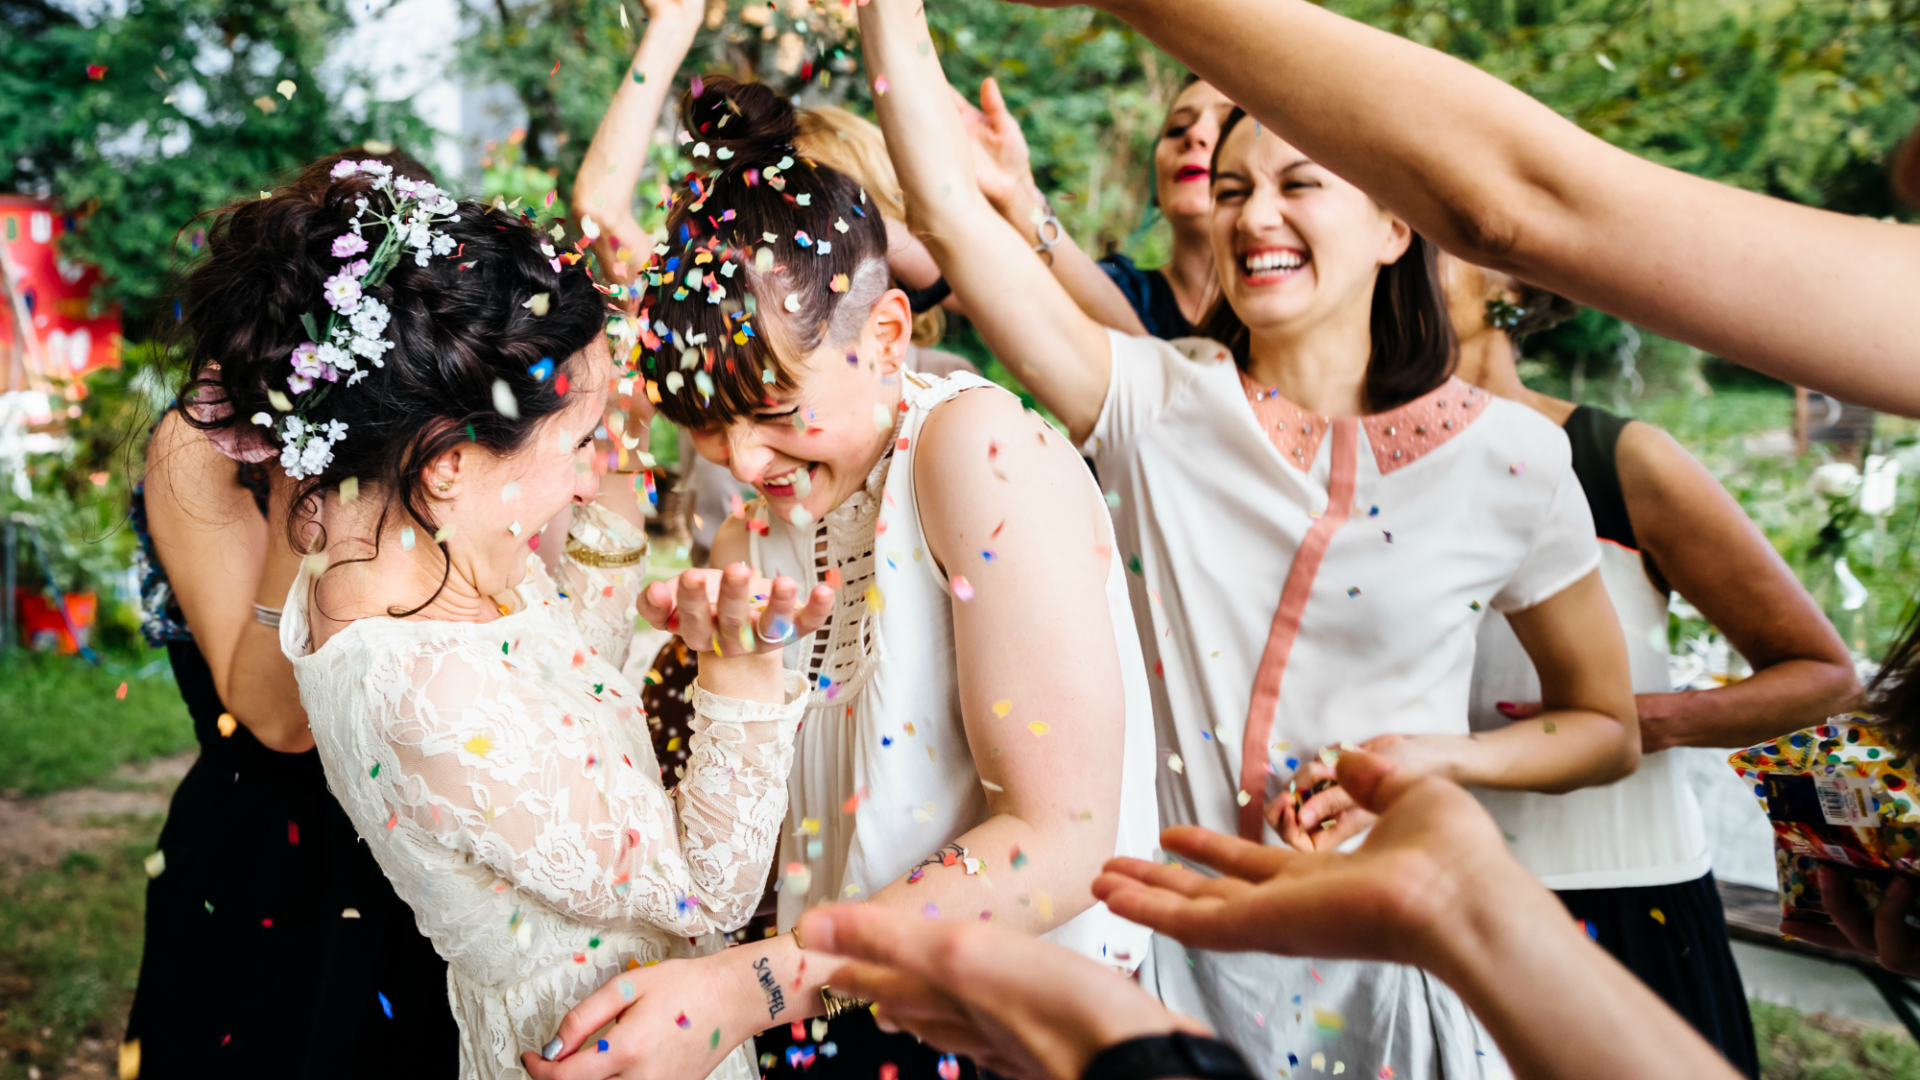 75 Mesmerizing Wedding Picture Ideas From Real Weddings